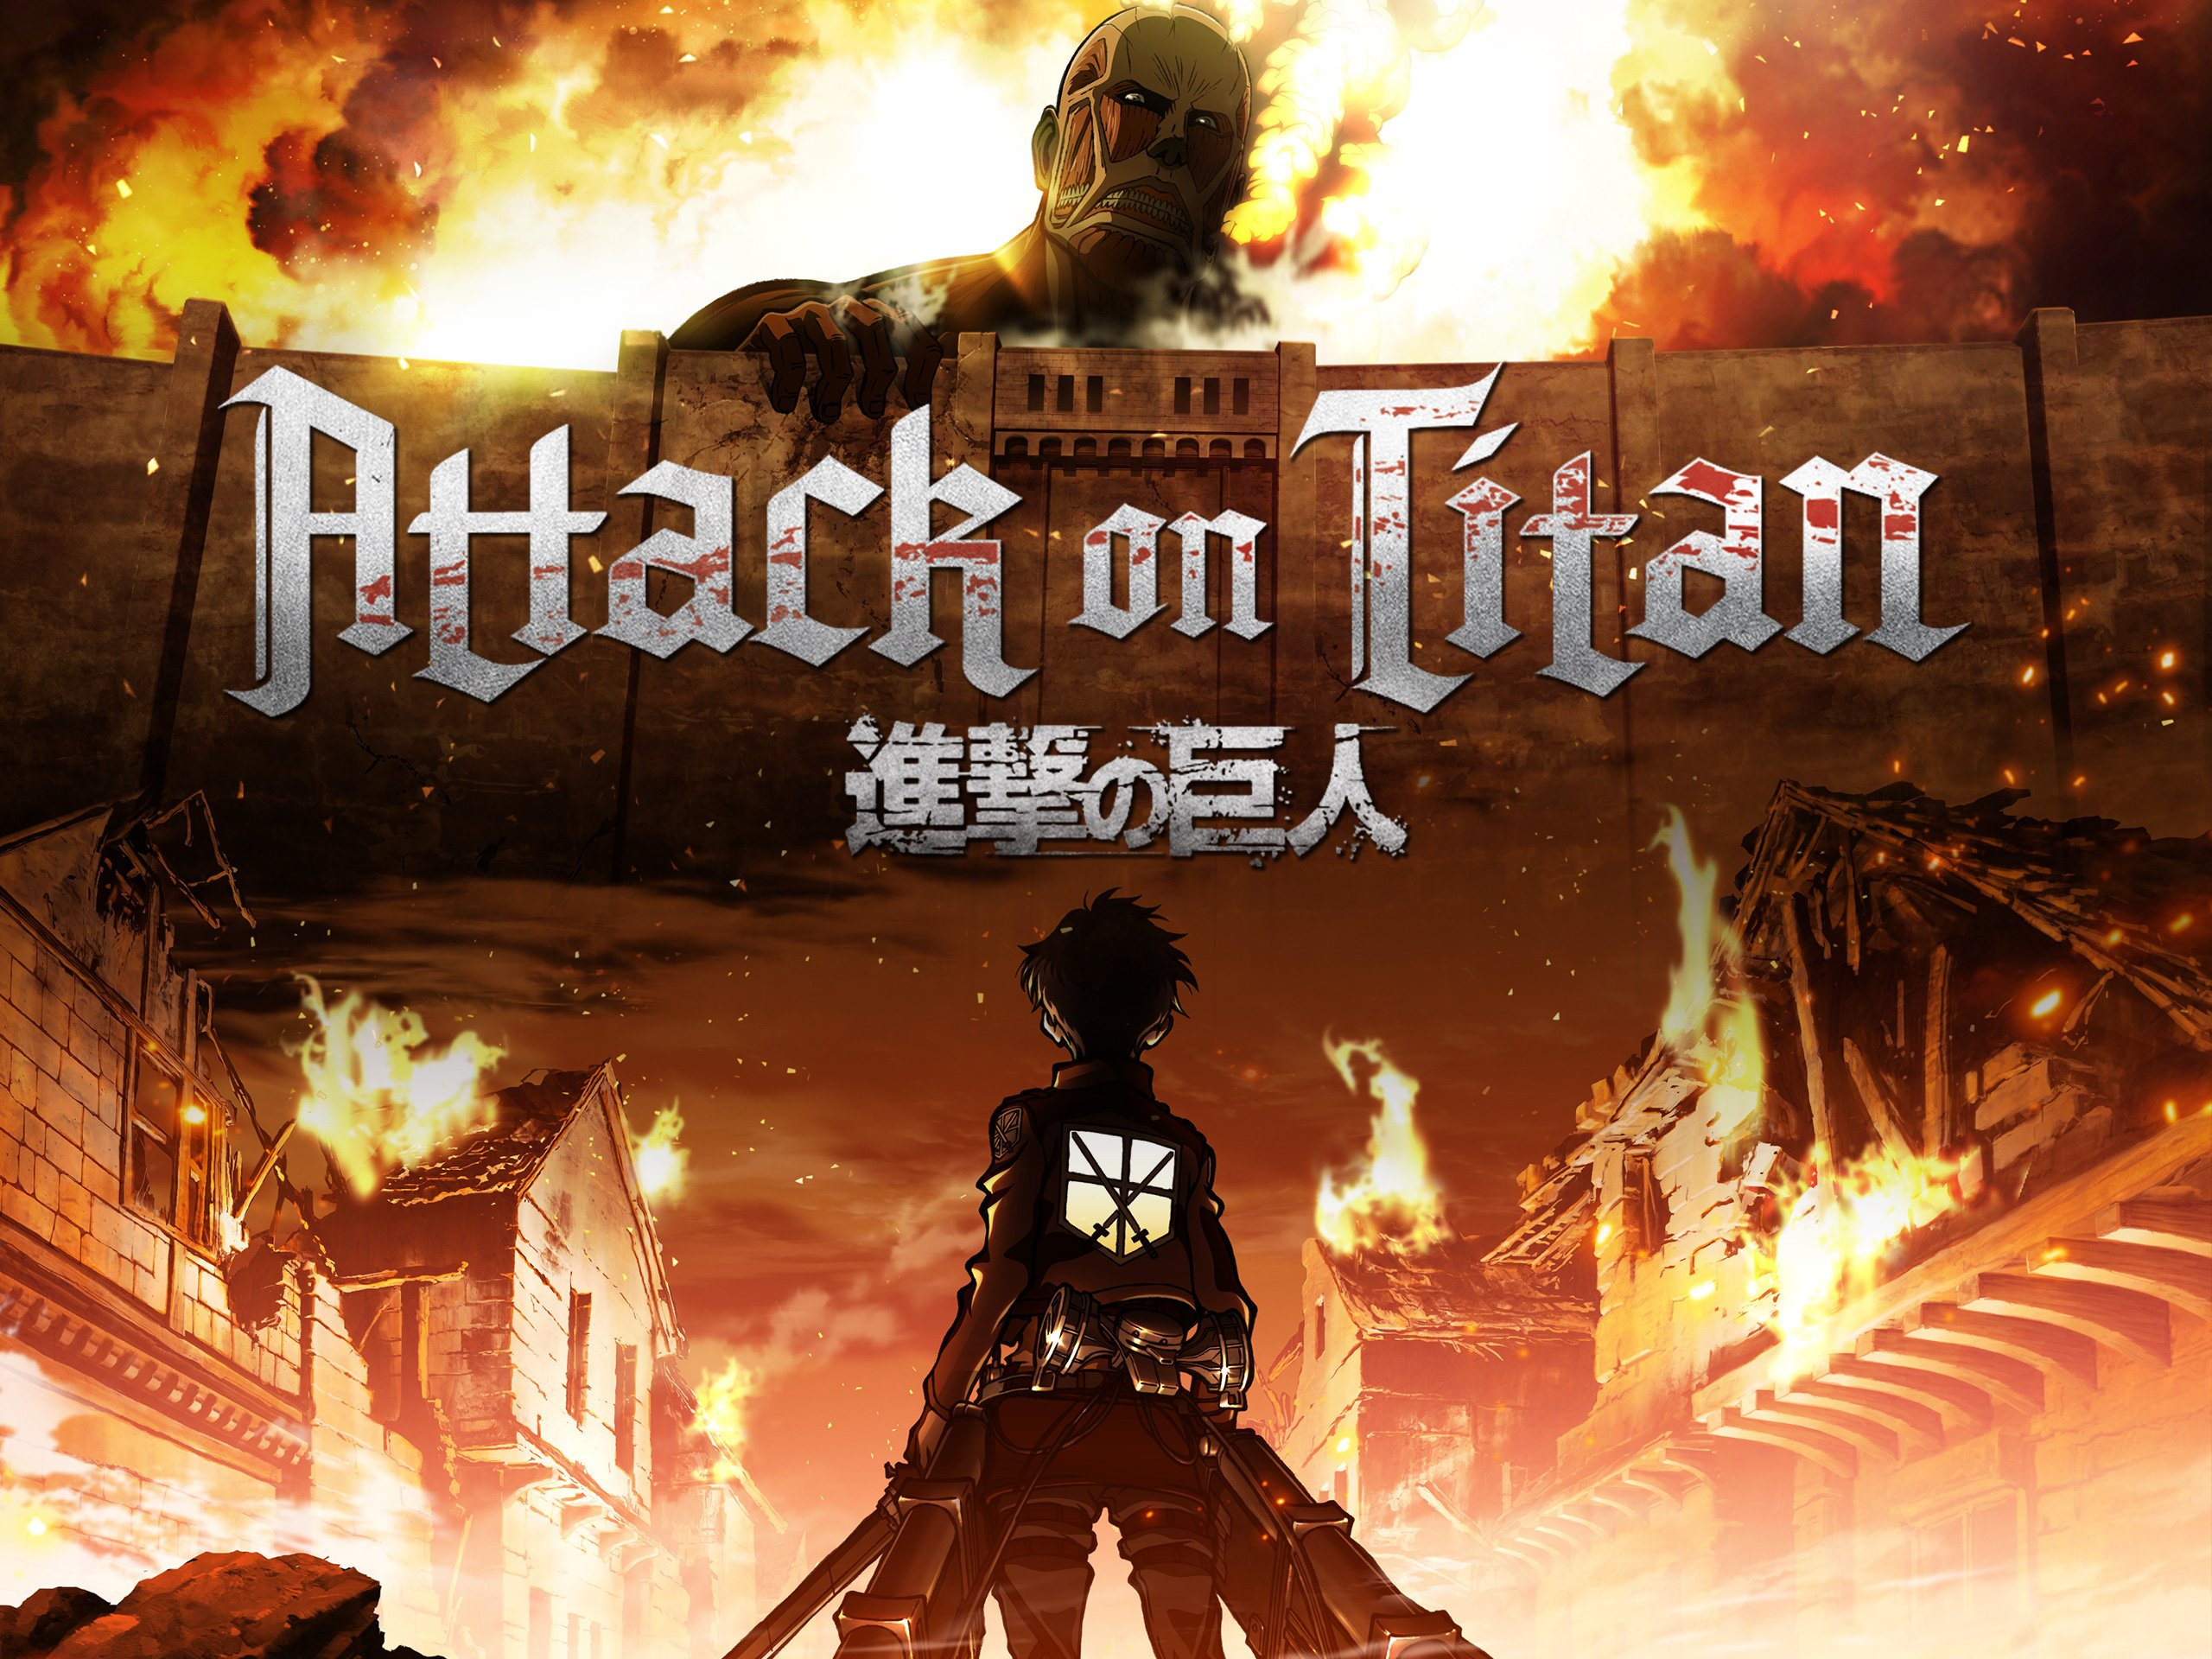 download attack on titan movie full